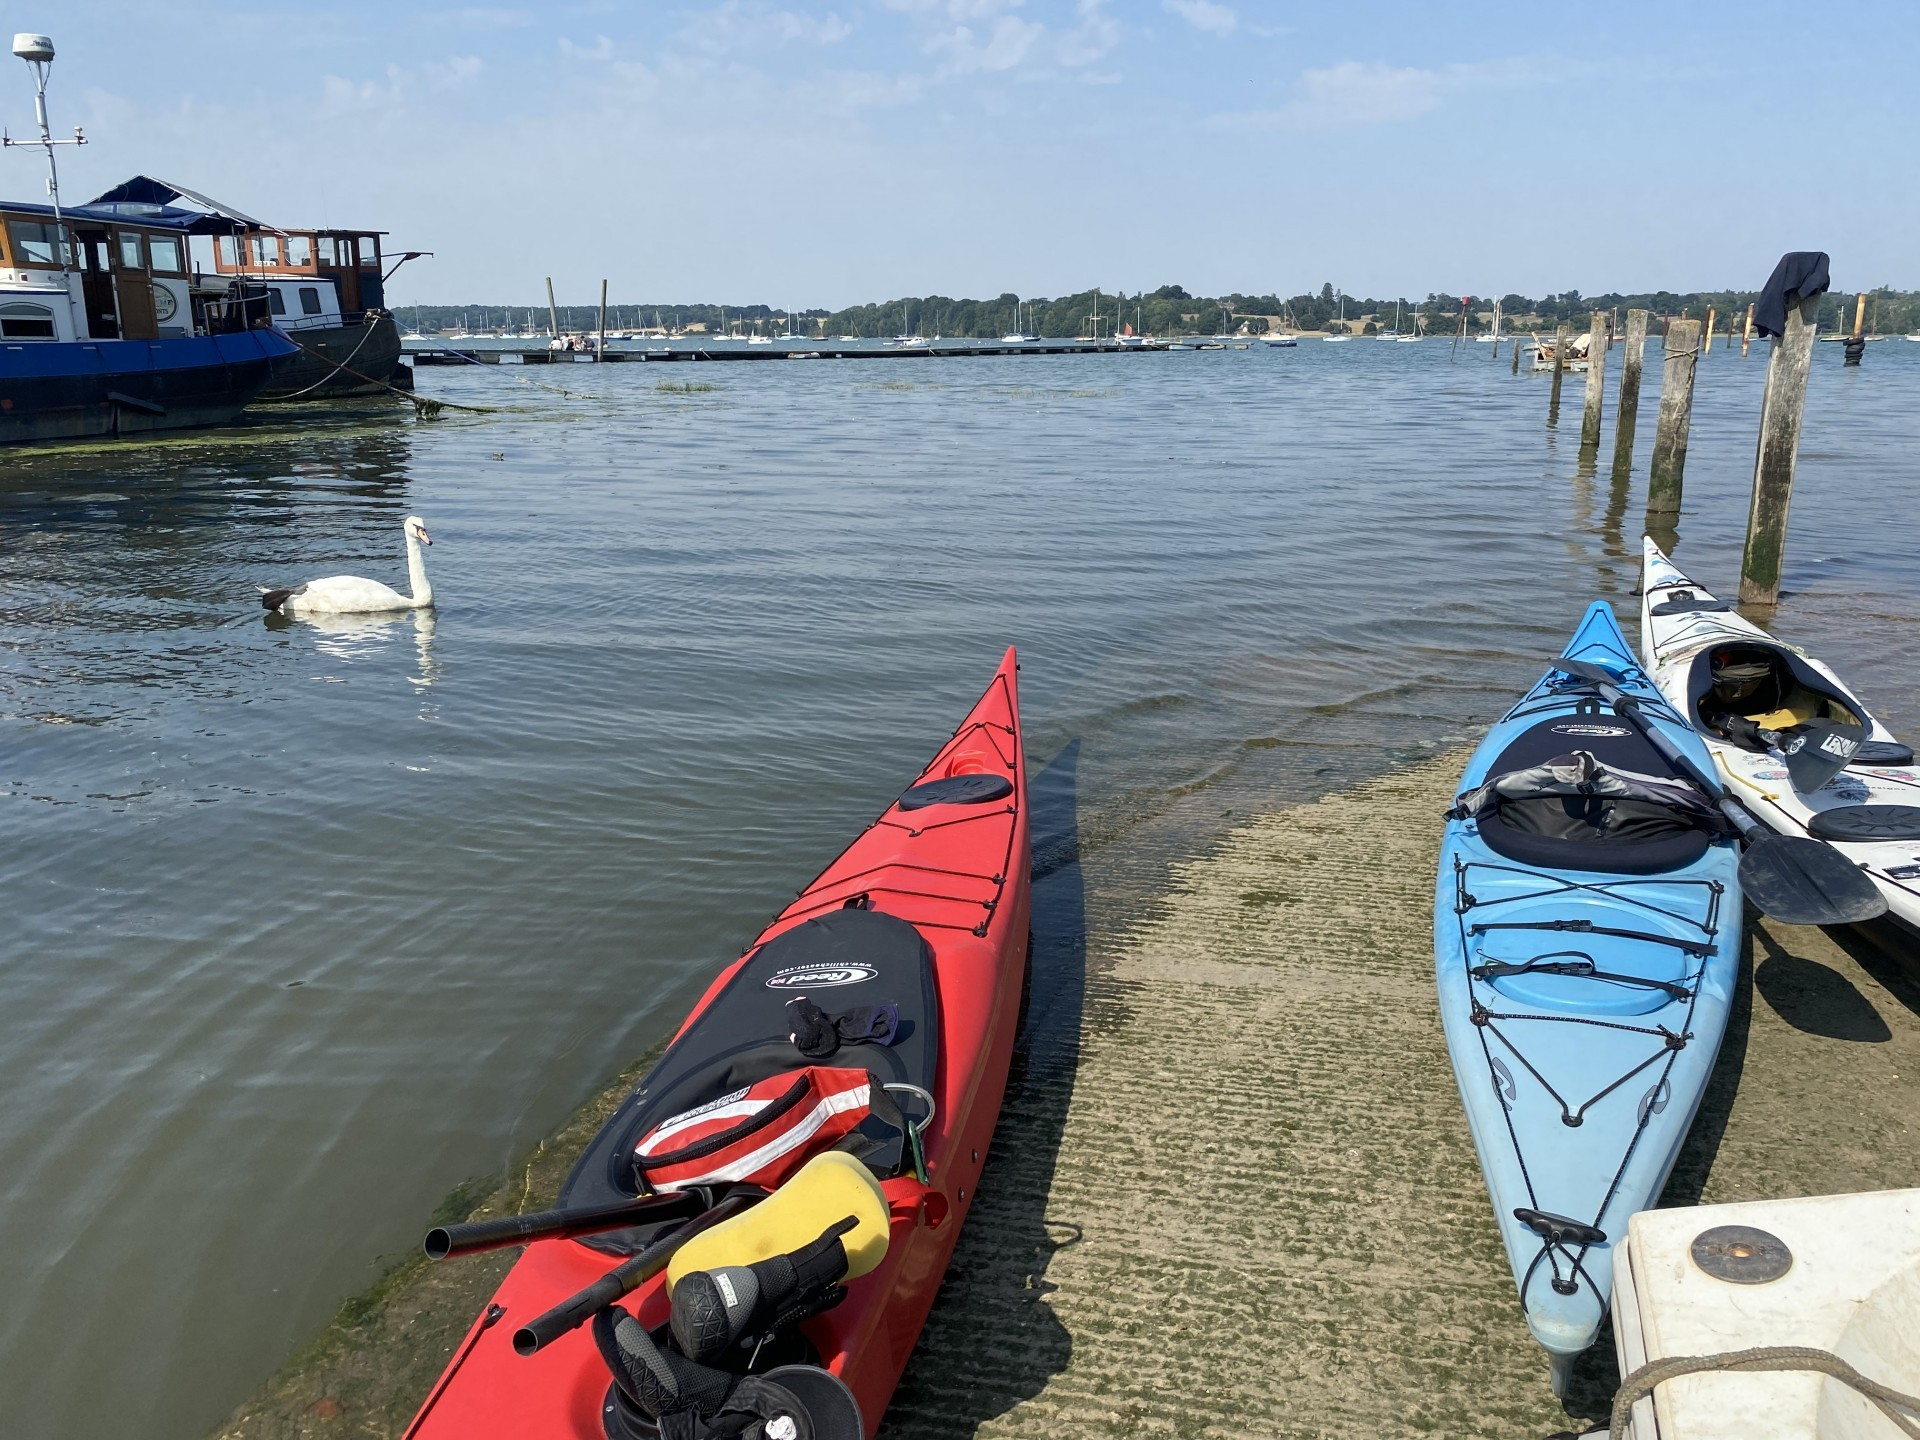 Sea kayaks on the slip with a swan in the background at Pin Mill on the Discover Kayaking trip